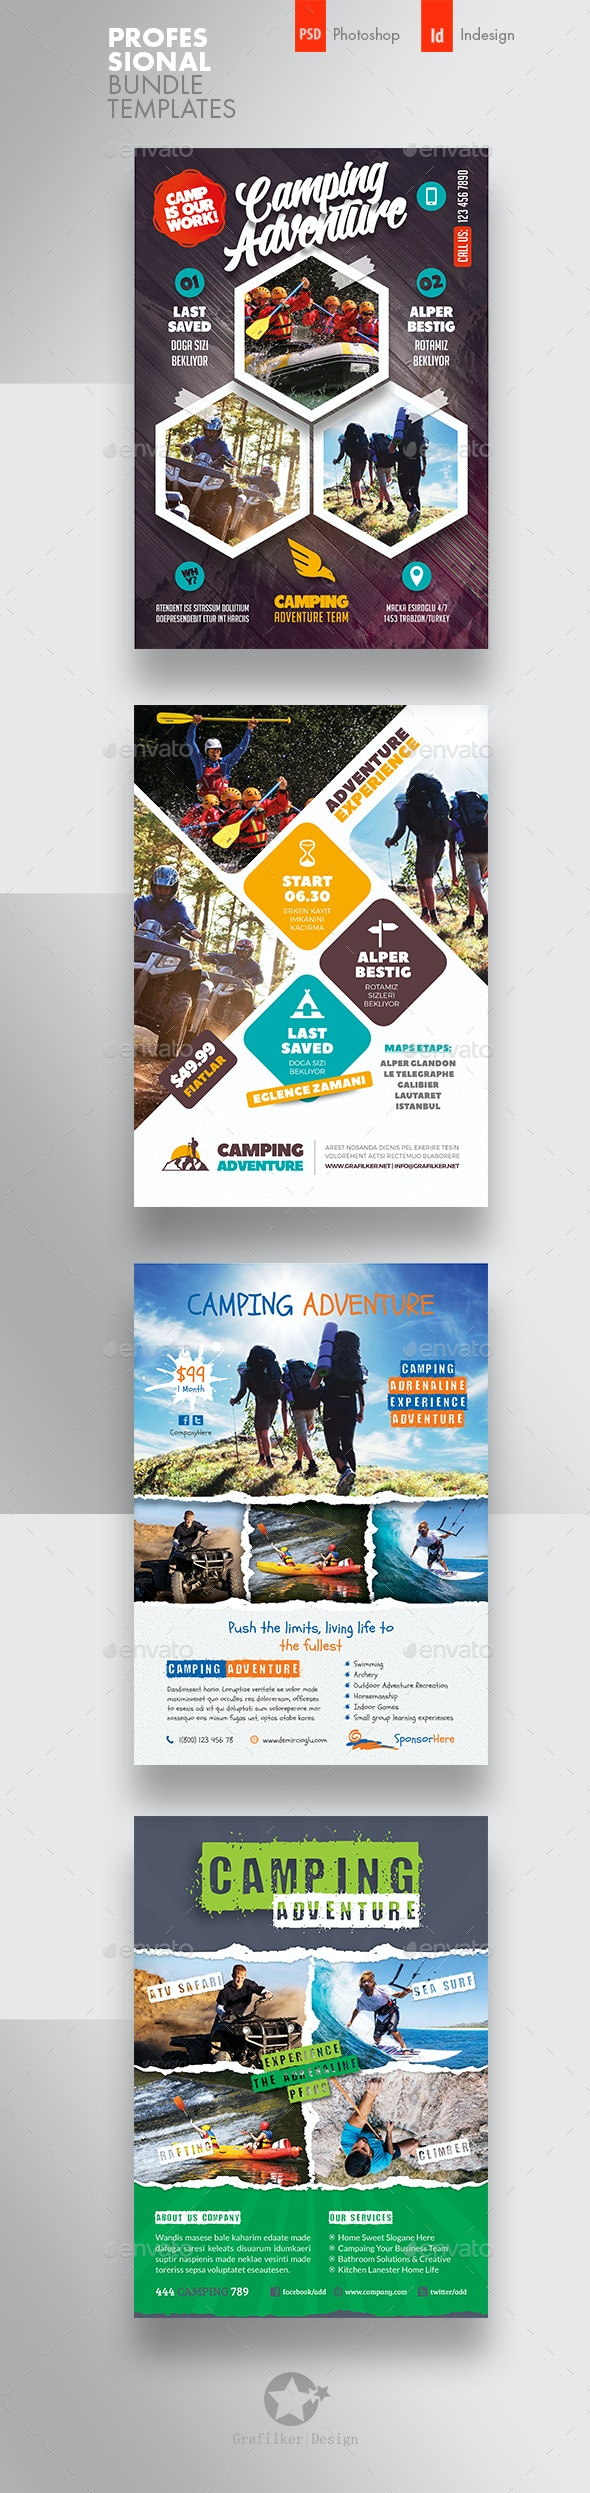 Camping Adventure Flyer Bundle Templates - Corporate Flyers